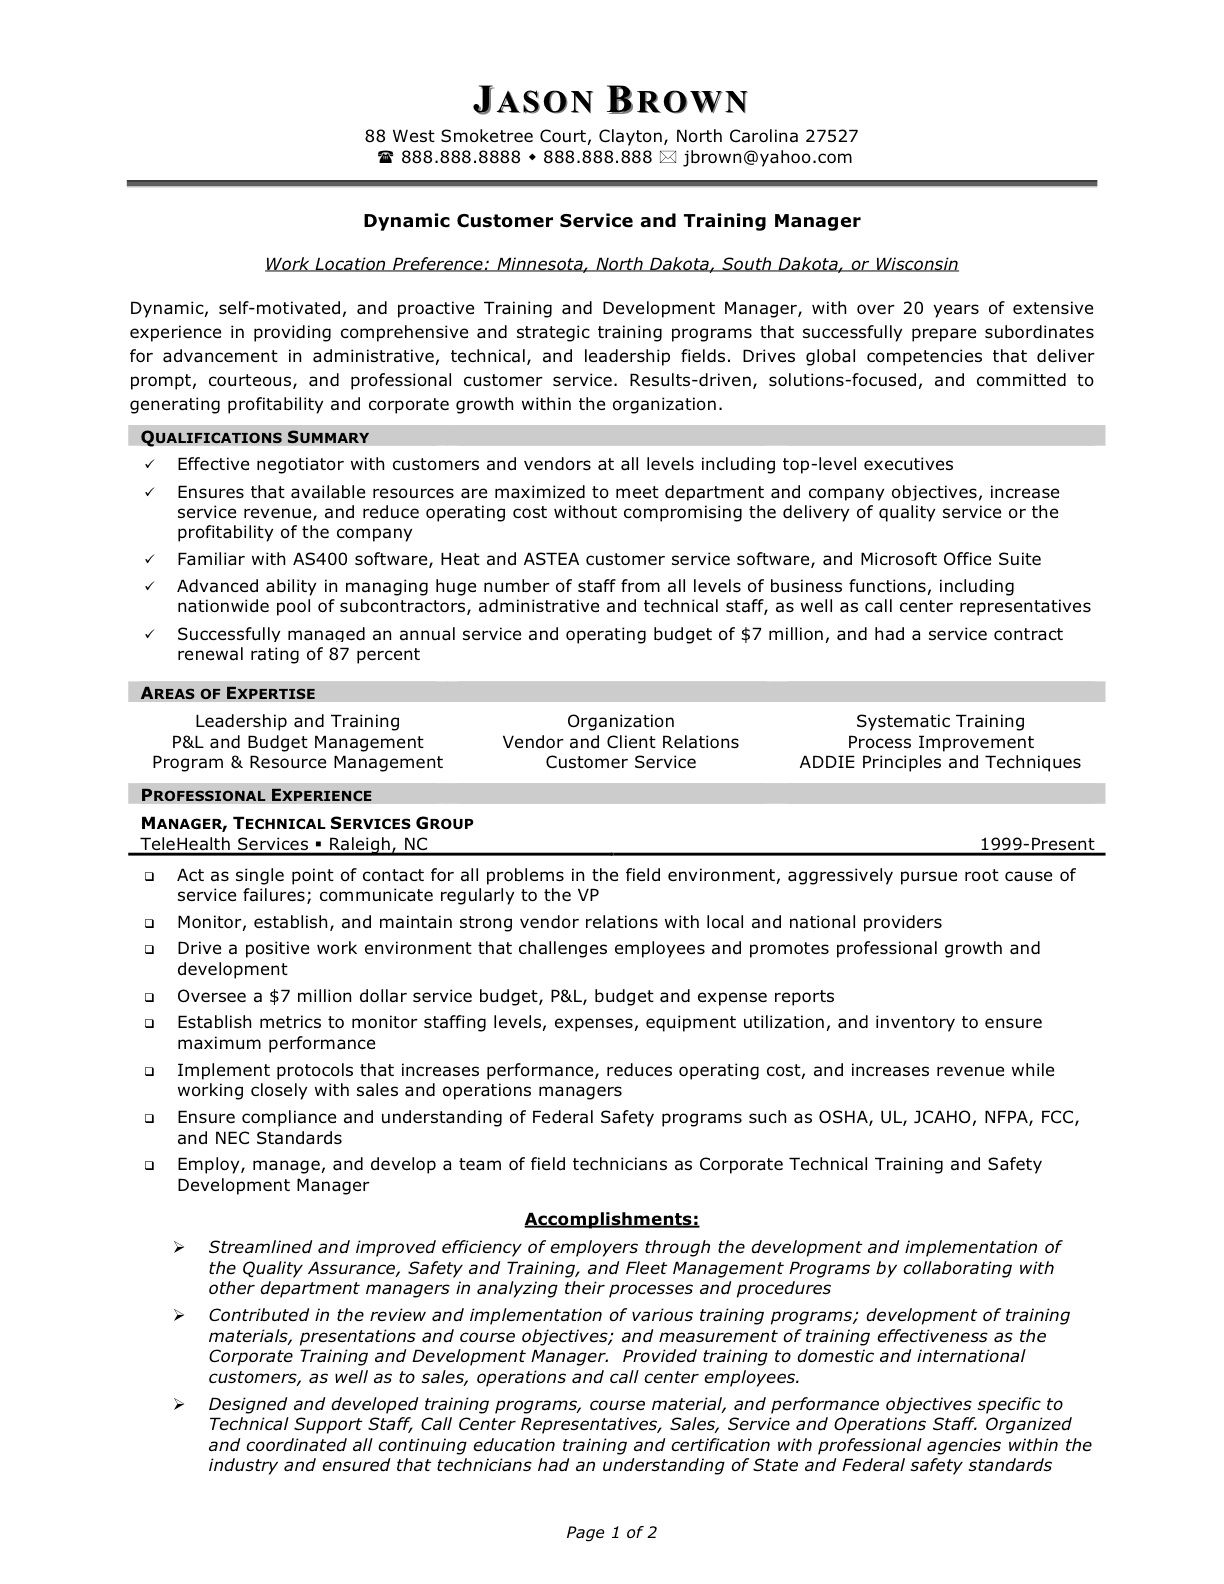 Training Manager Resume Customer Service Manager Resume  Httpwwwresumecareer